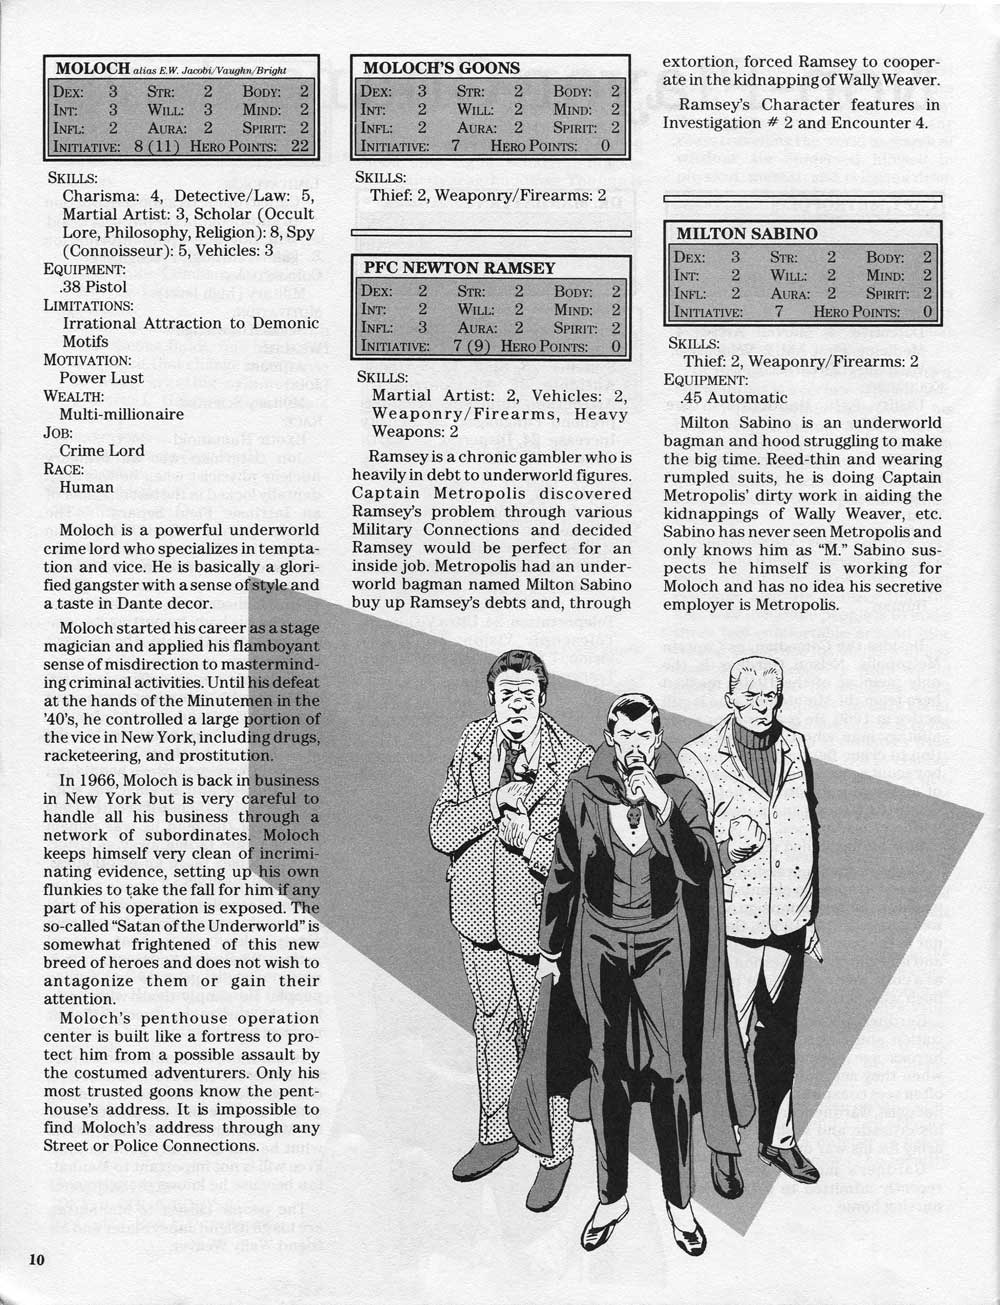 watchmen fair rpg stats 1987 once upon a geek while compiling information